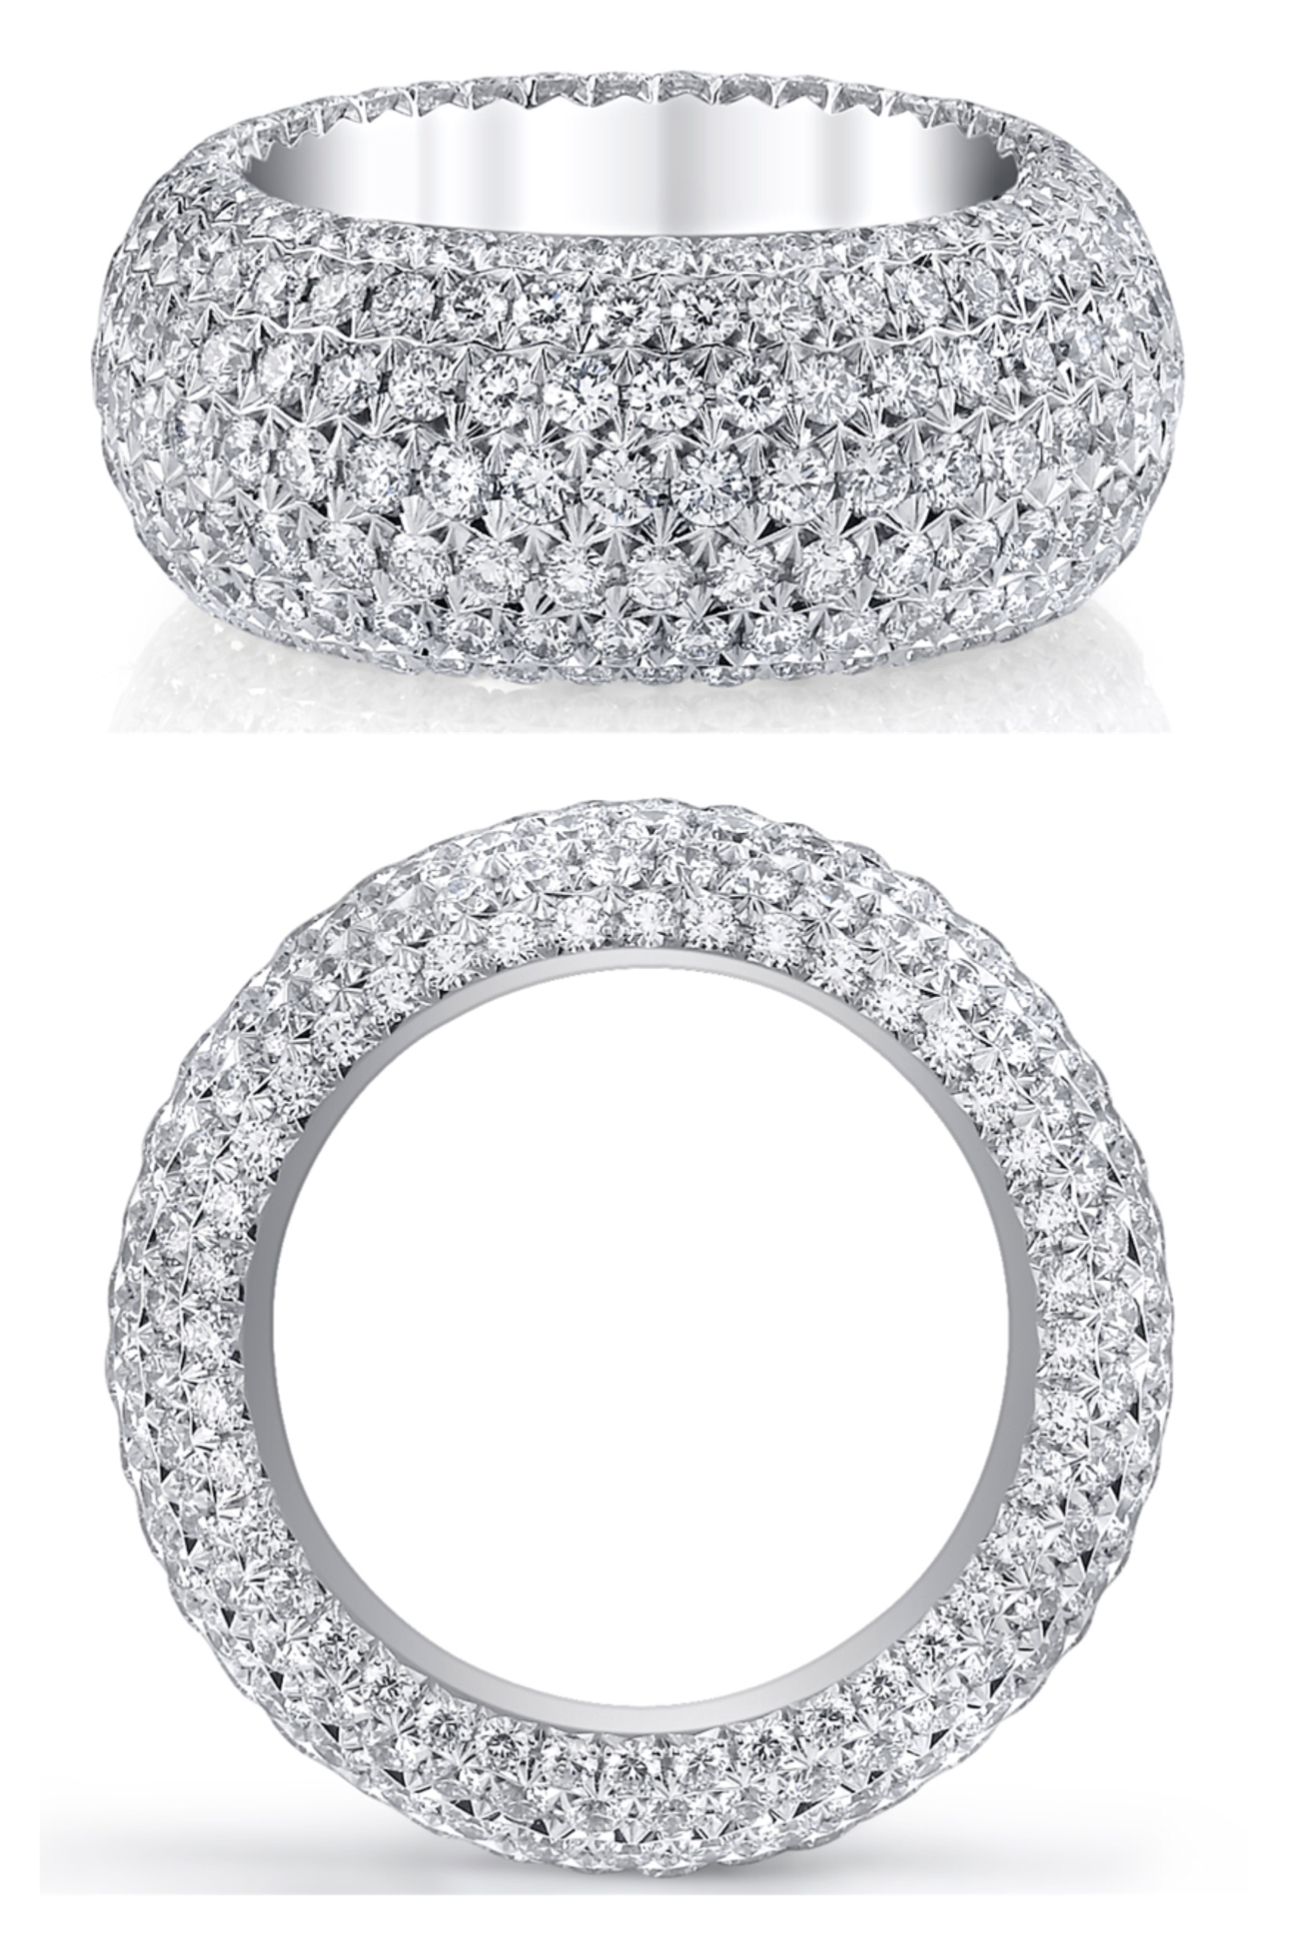 micro pave lg wedding diamond bands